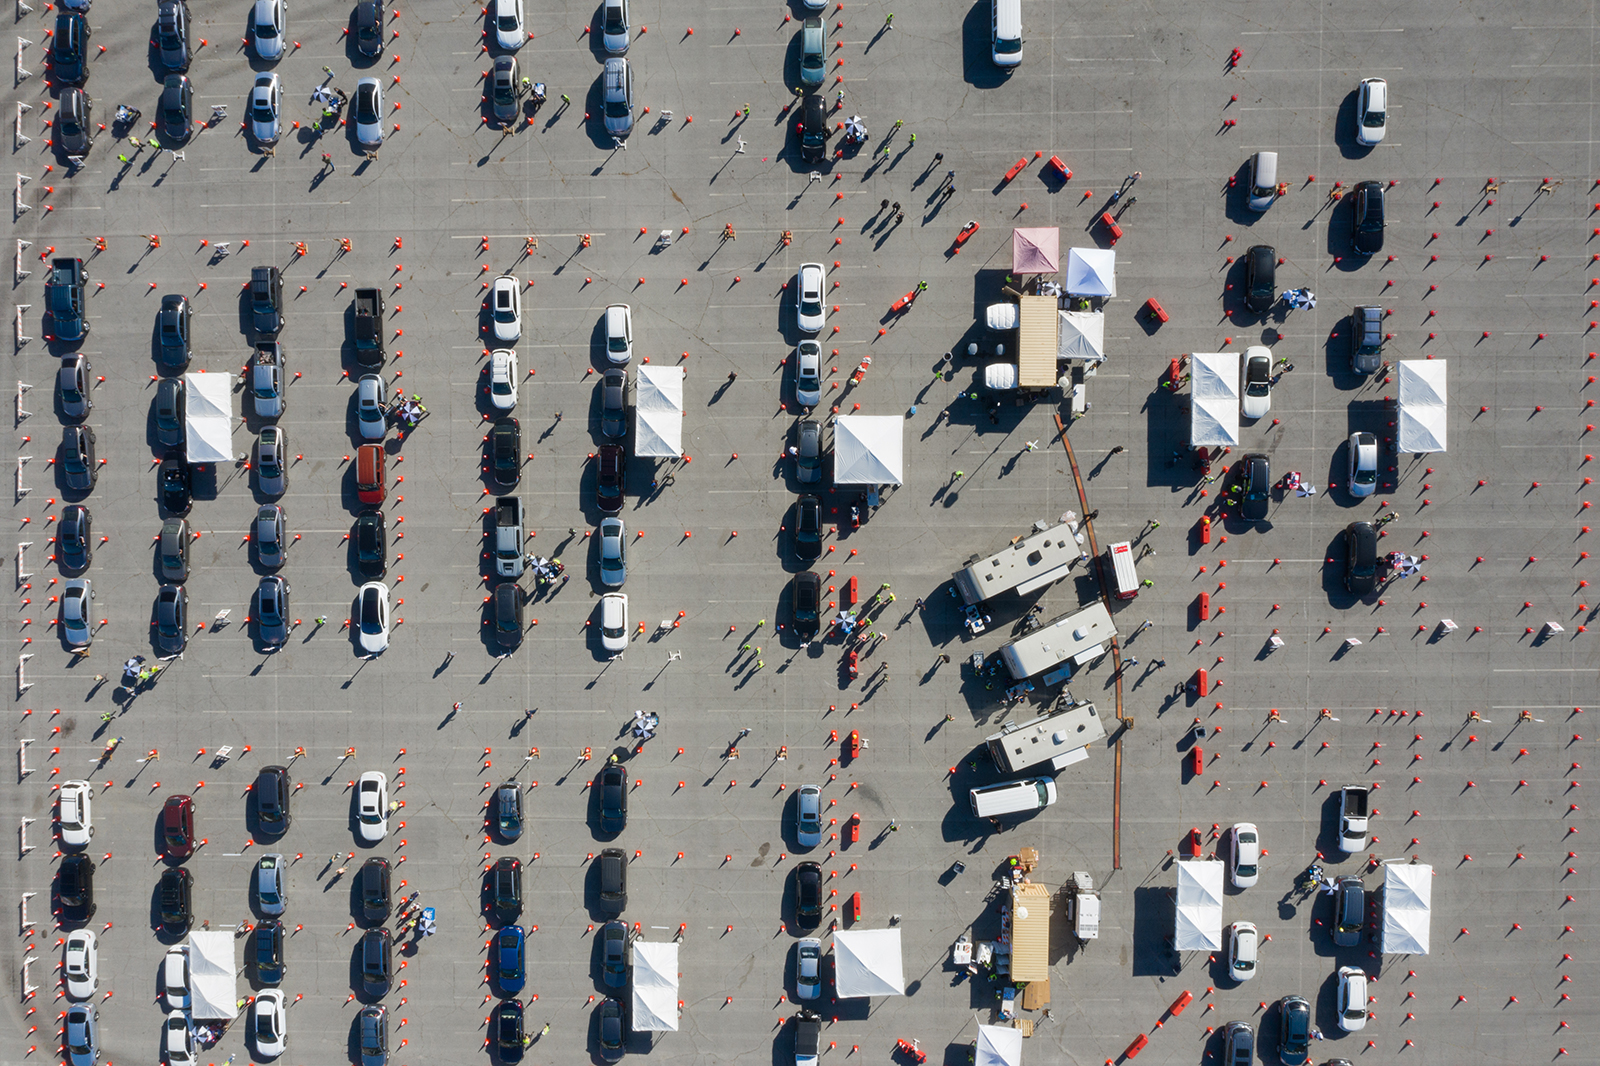 People wait in vehicles at a Covid-19 vaccination site in the Dodger Stadium parking lot in Los Angeles, on January 15.